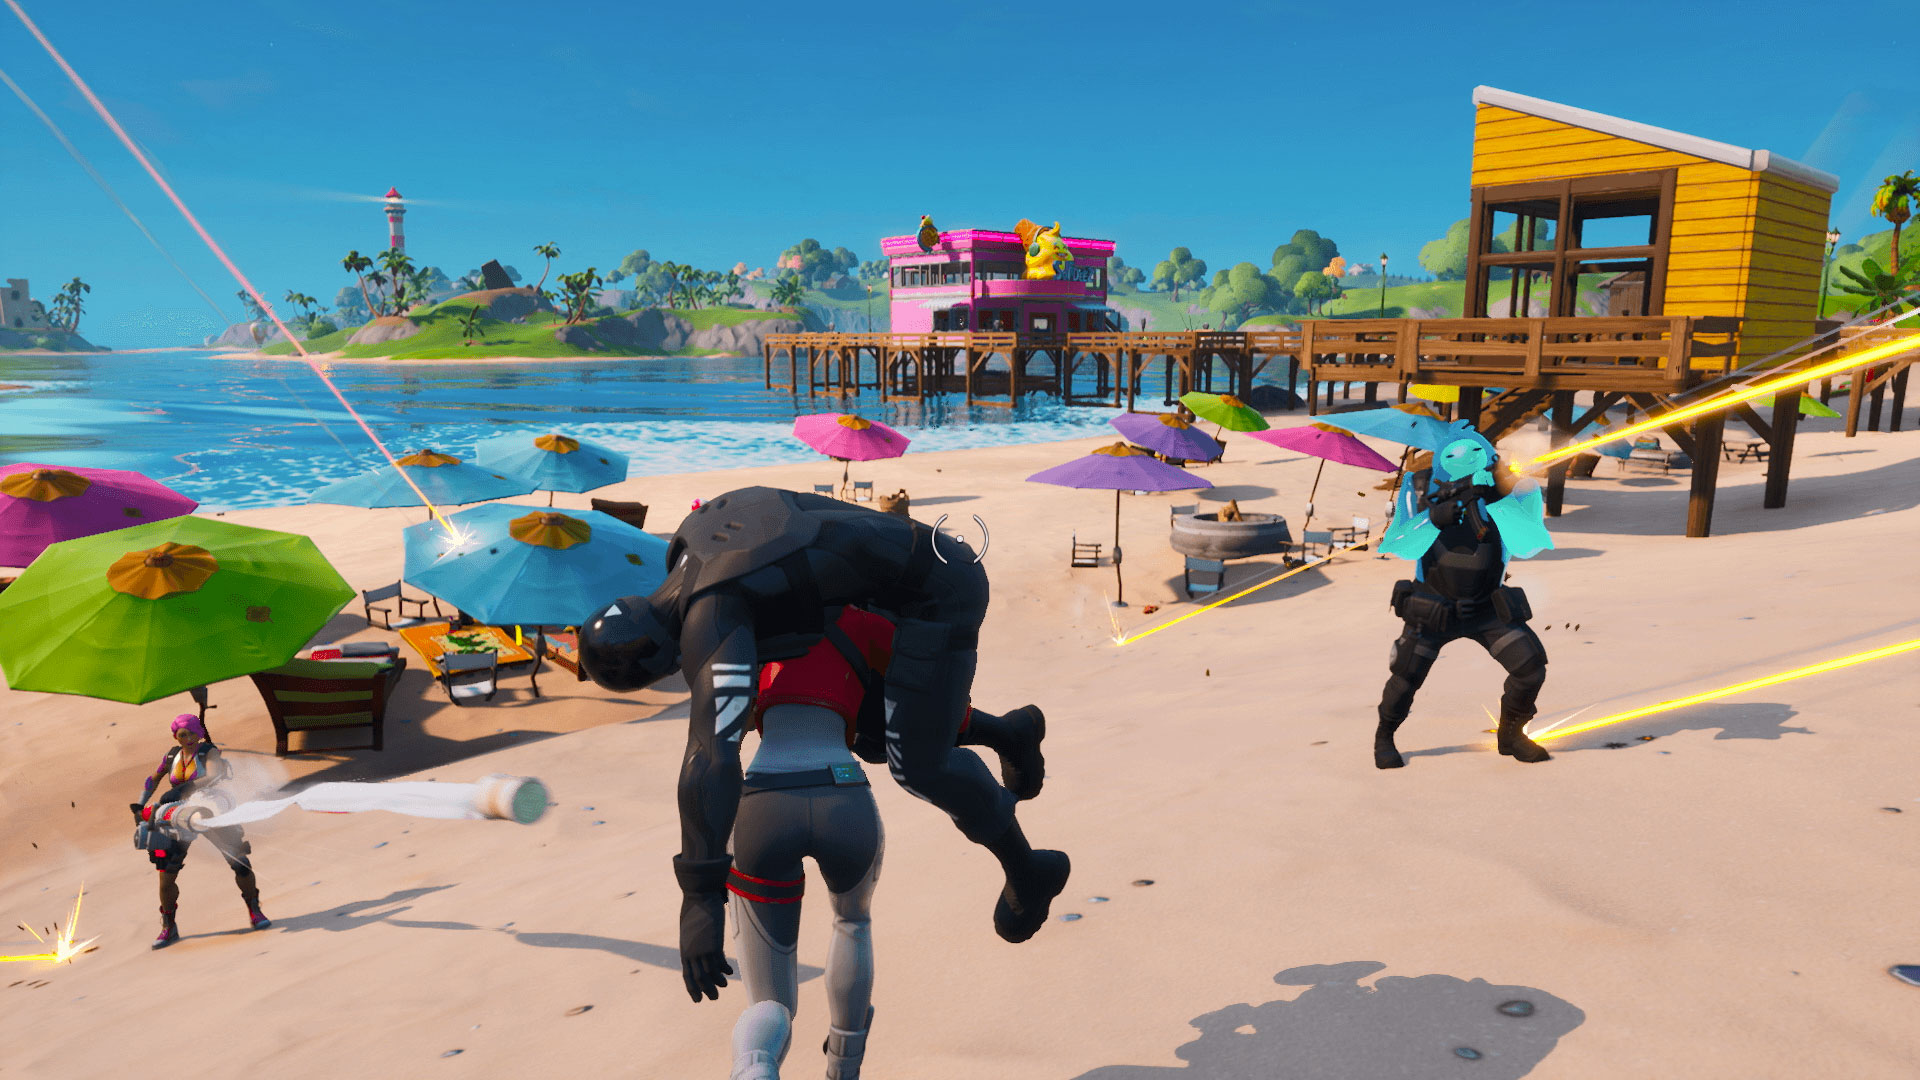 How To Level Up Fast In Fortnite Earn Xp And Get Those Rewards Gamesradar